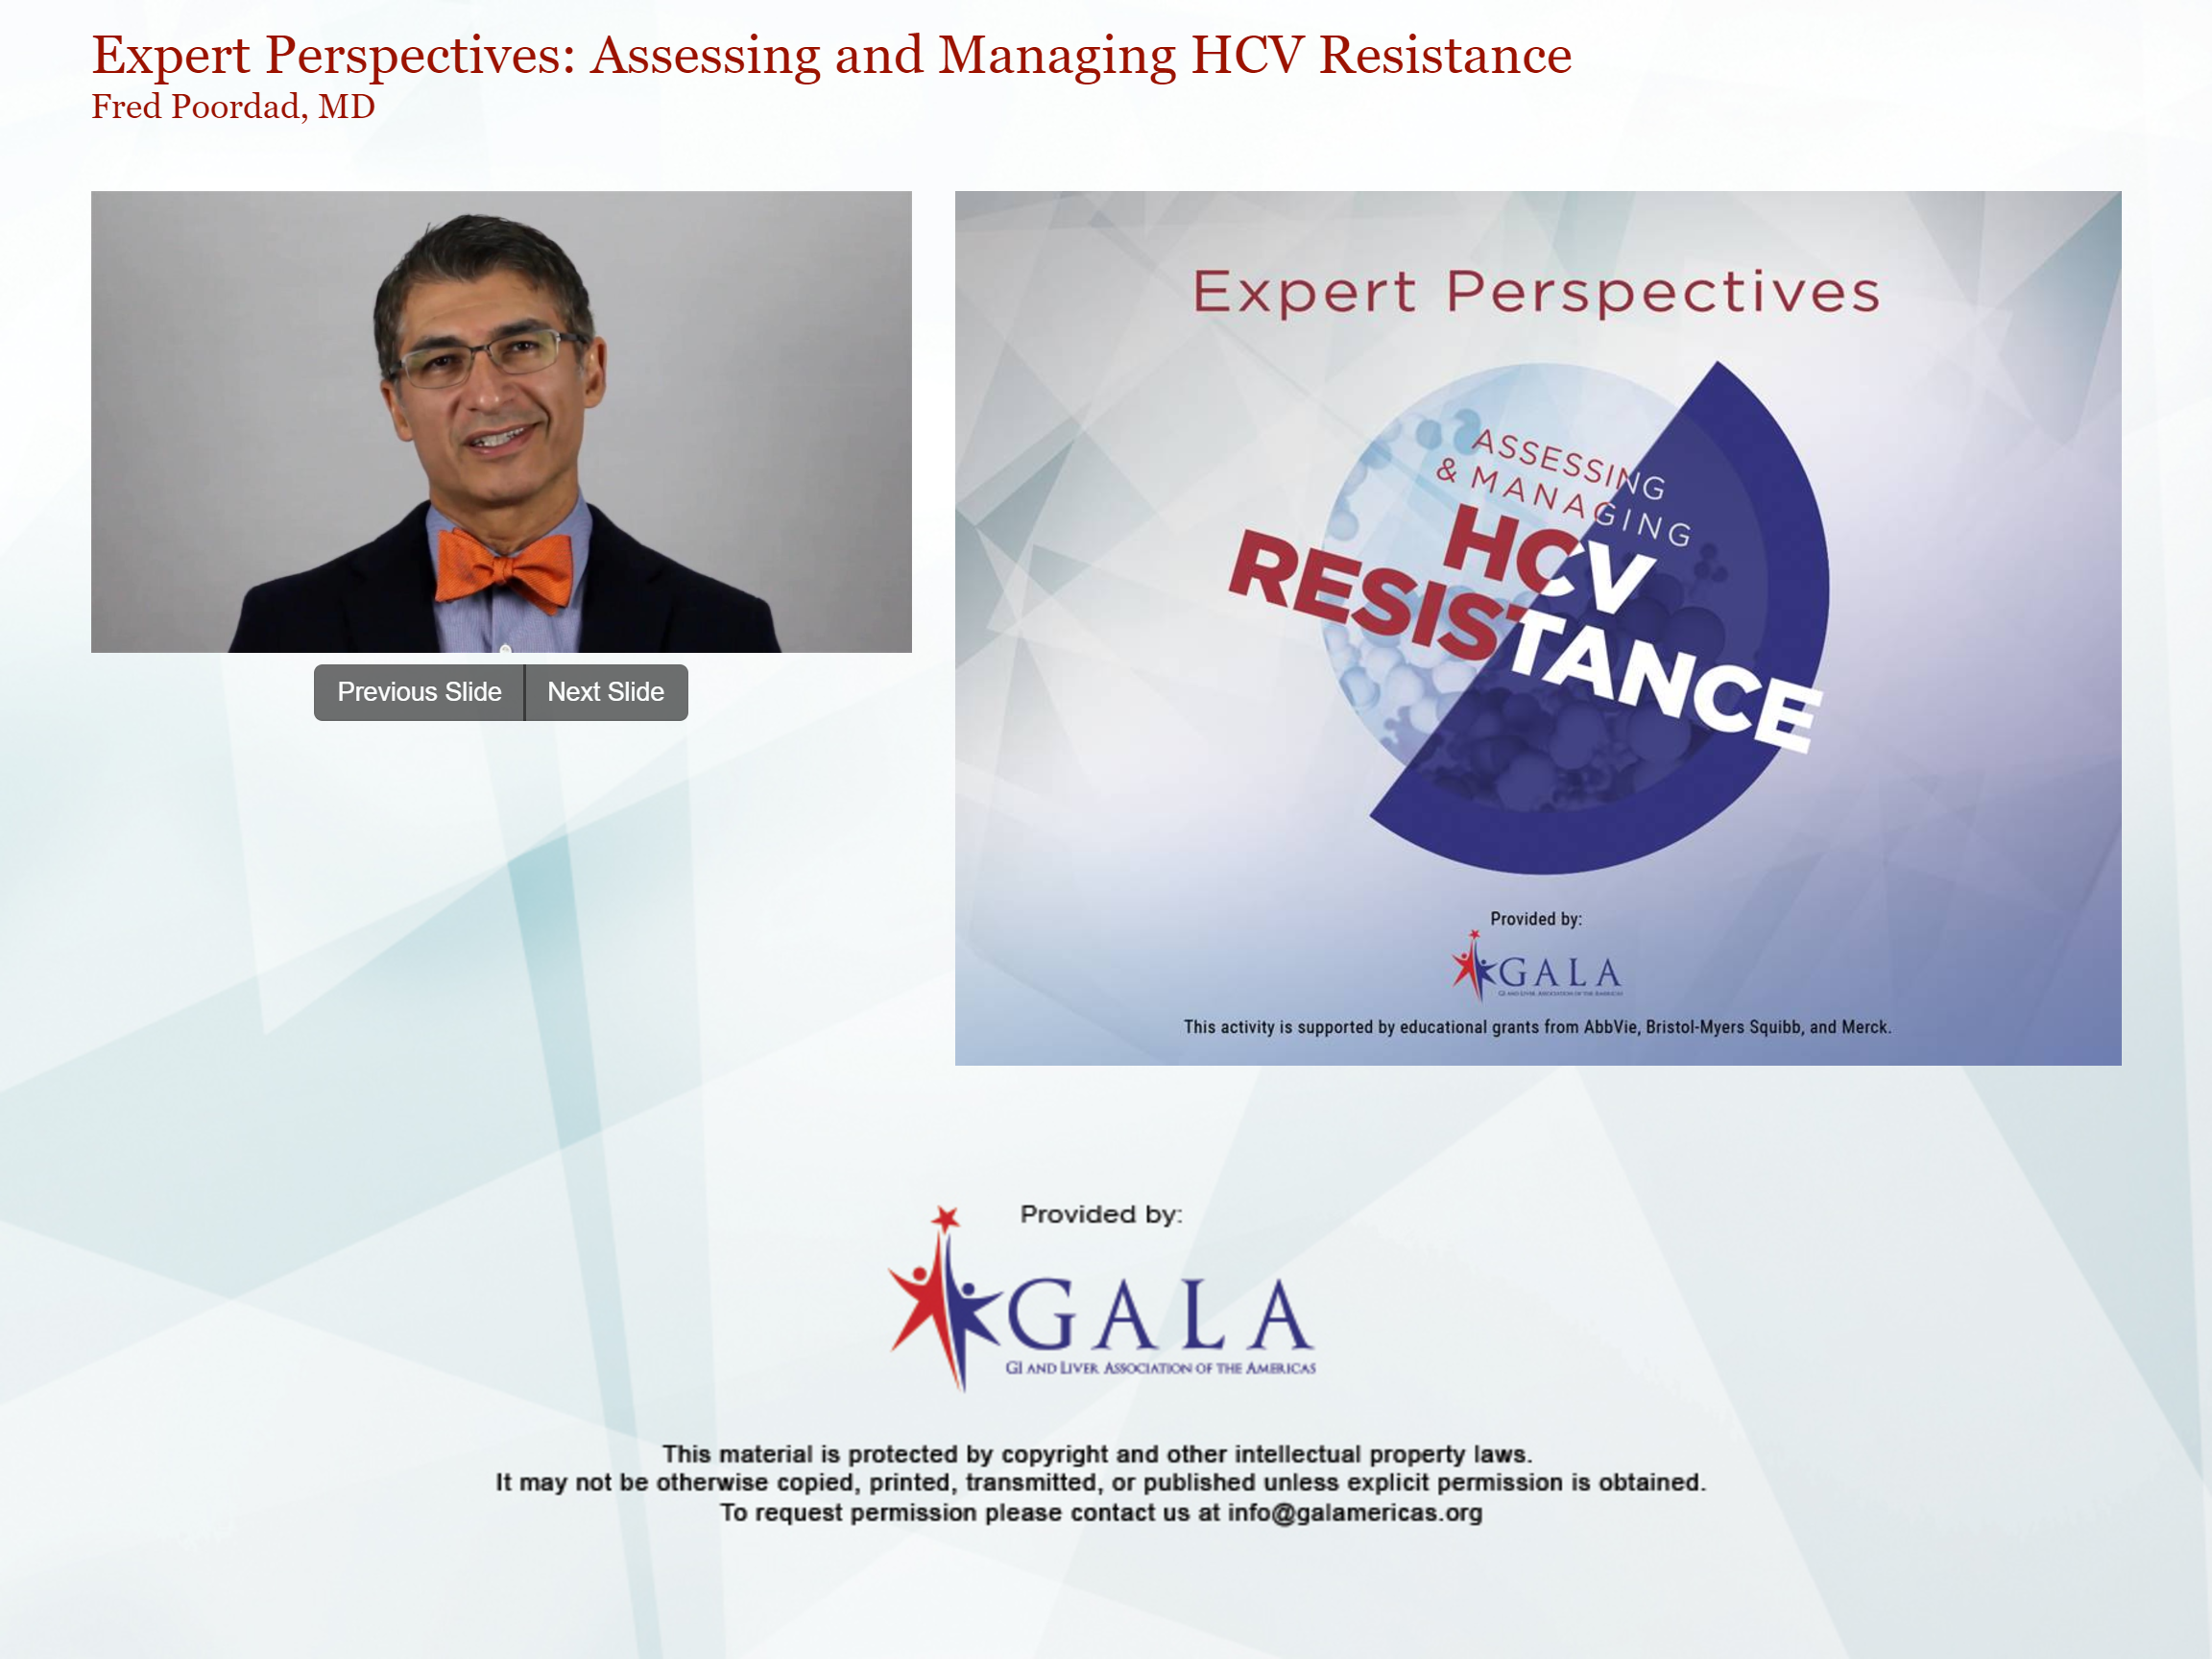 Assessing and Managing HCV Resistance